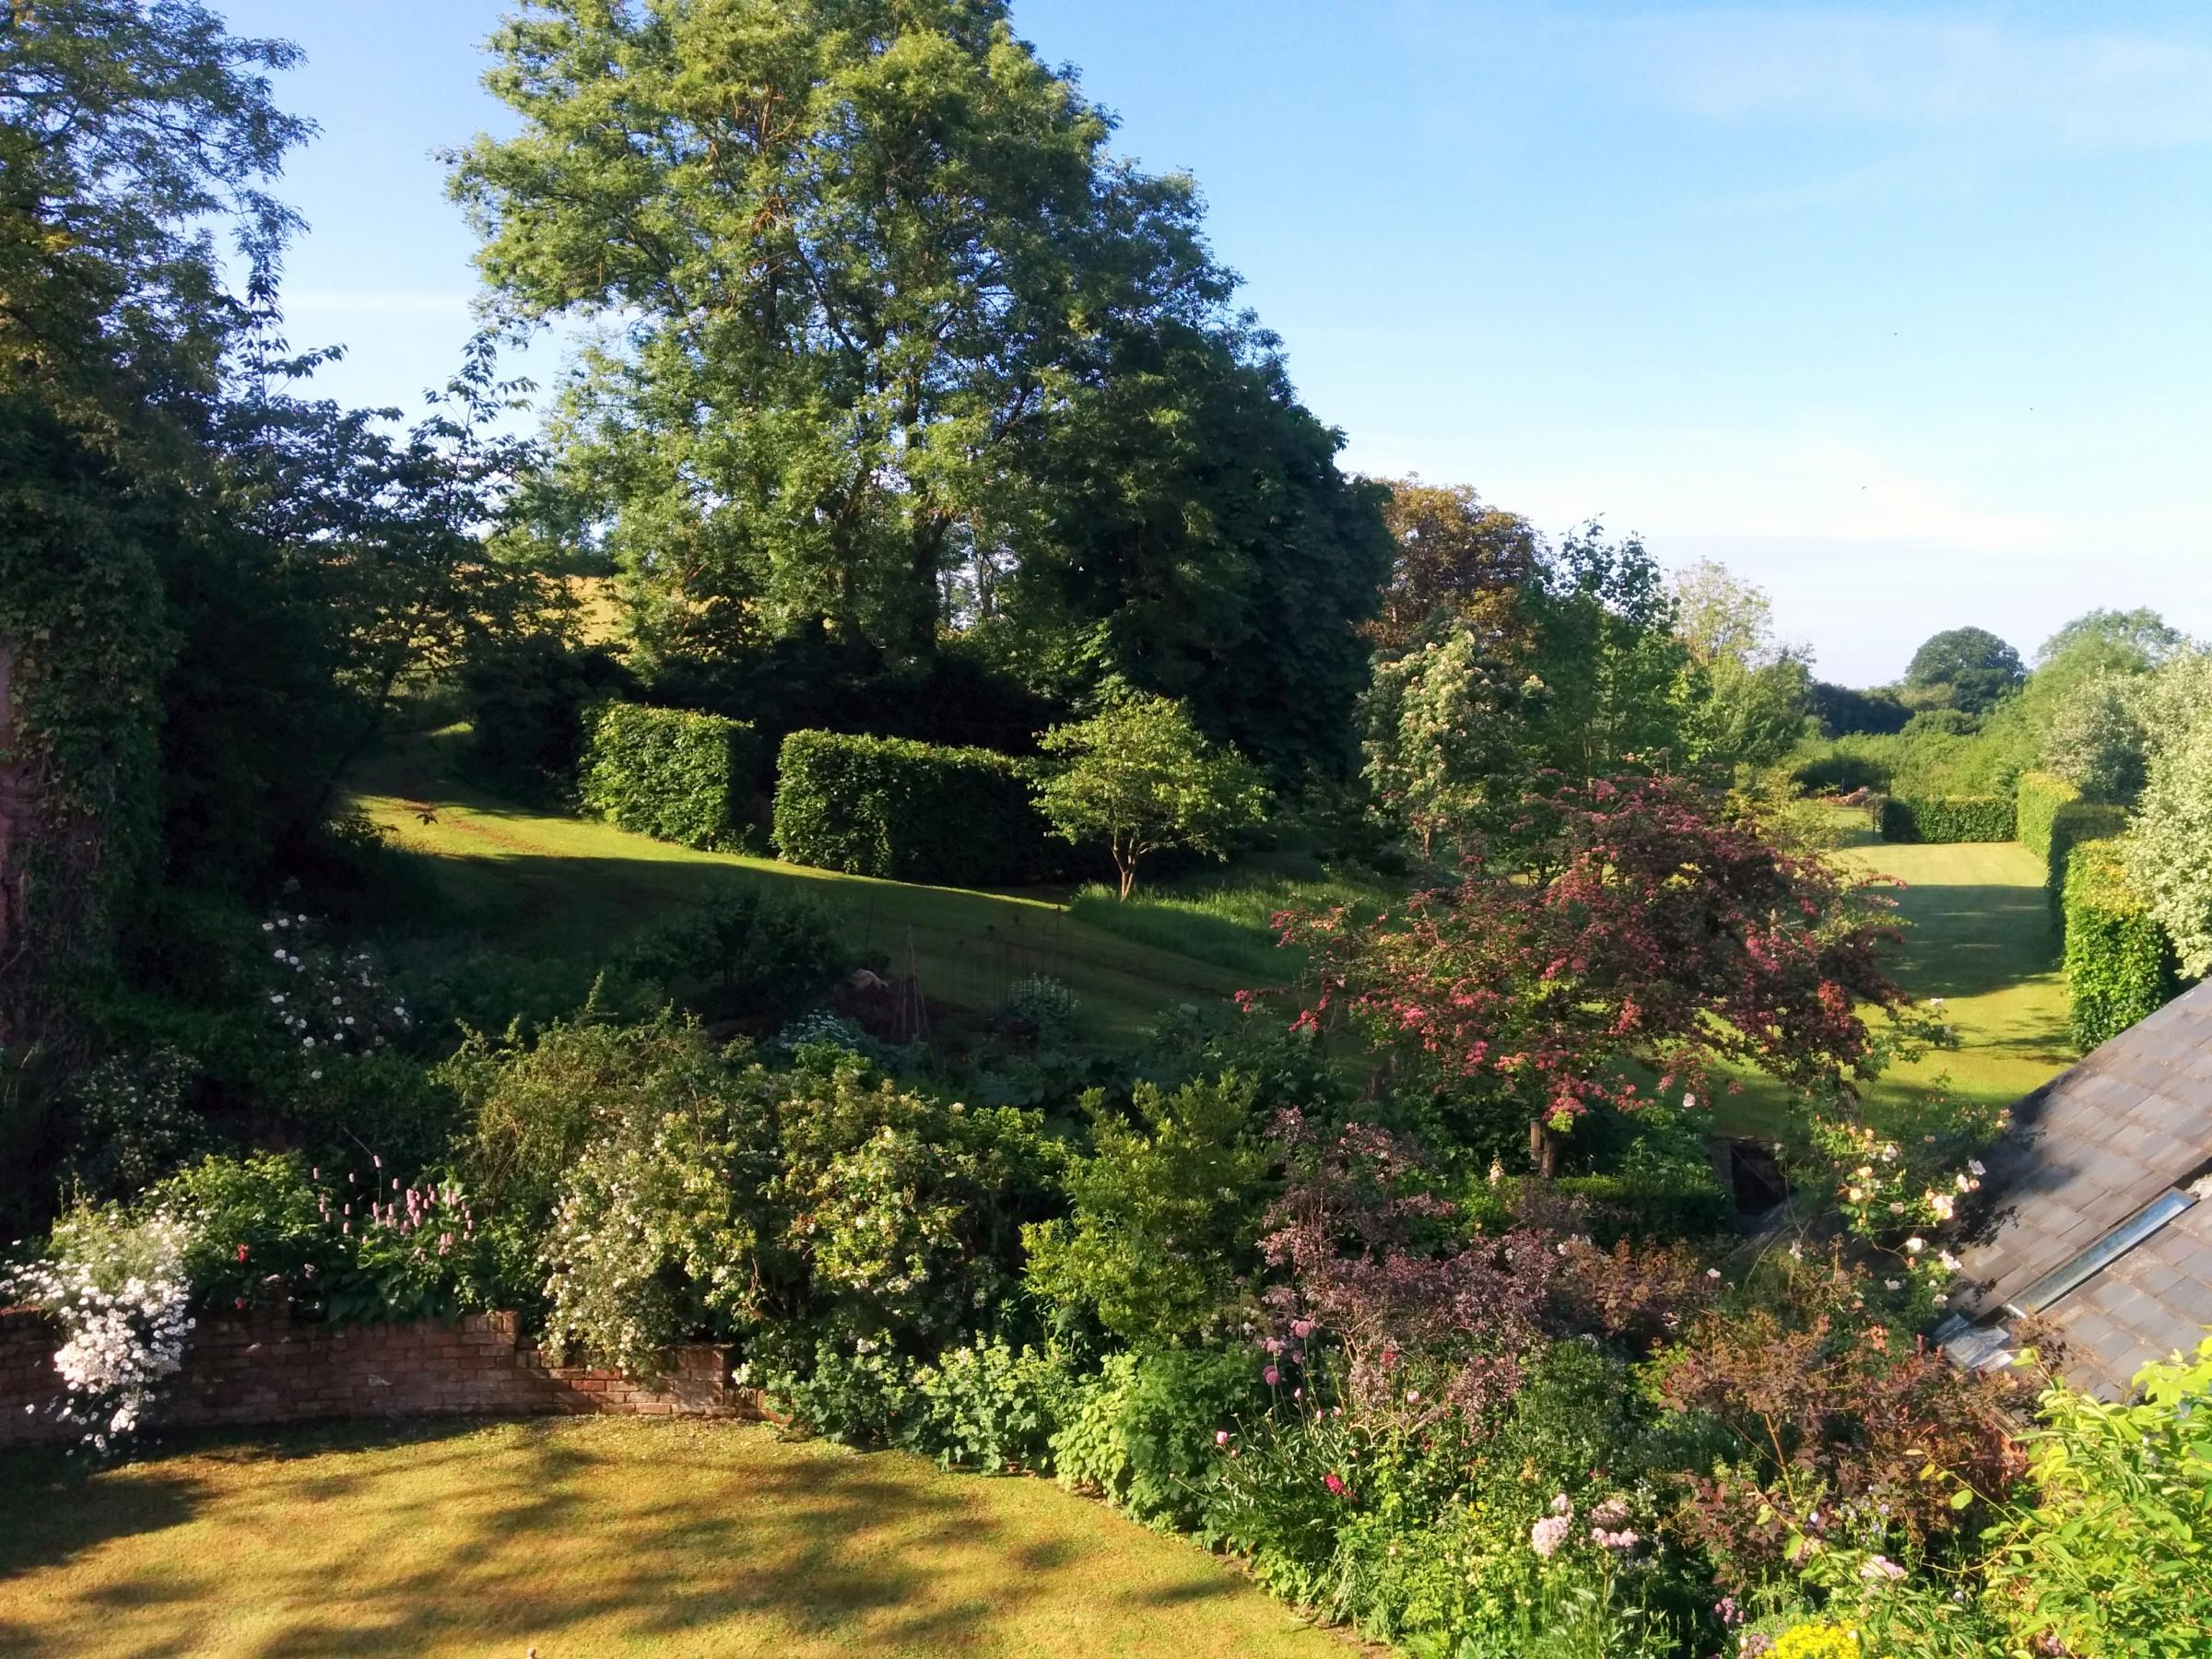 St Margaret's Hospice Open Gardens – Westleigh Farm, Westleigh, Lydeard St Lawrence